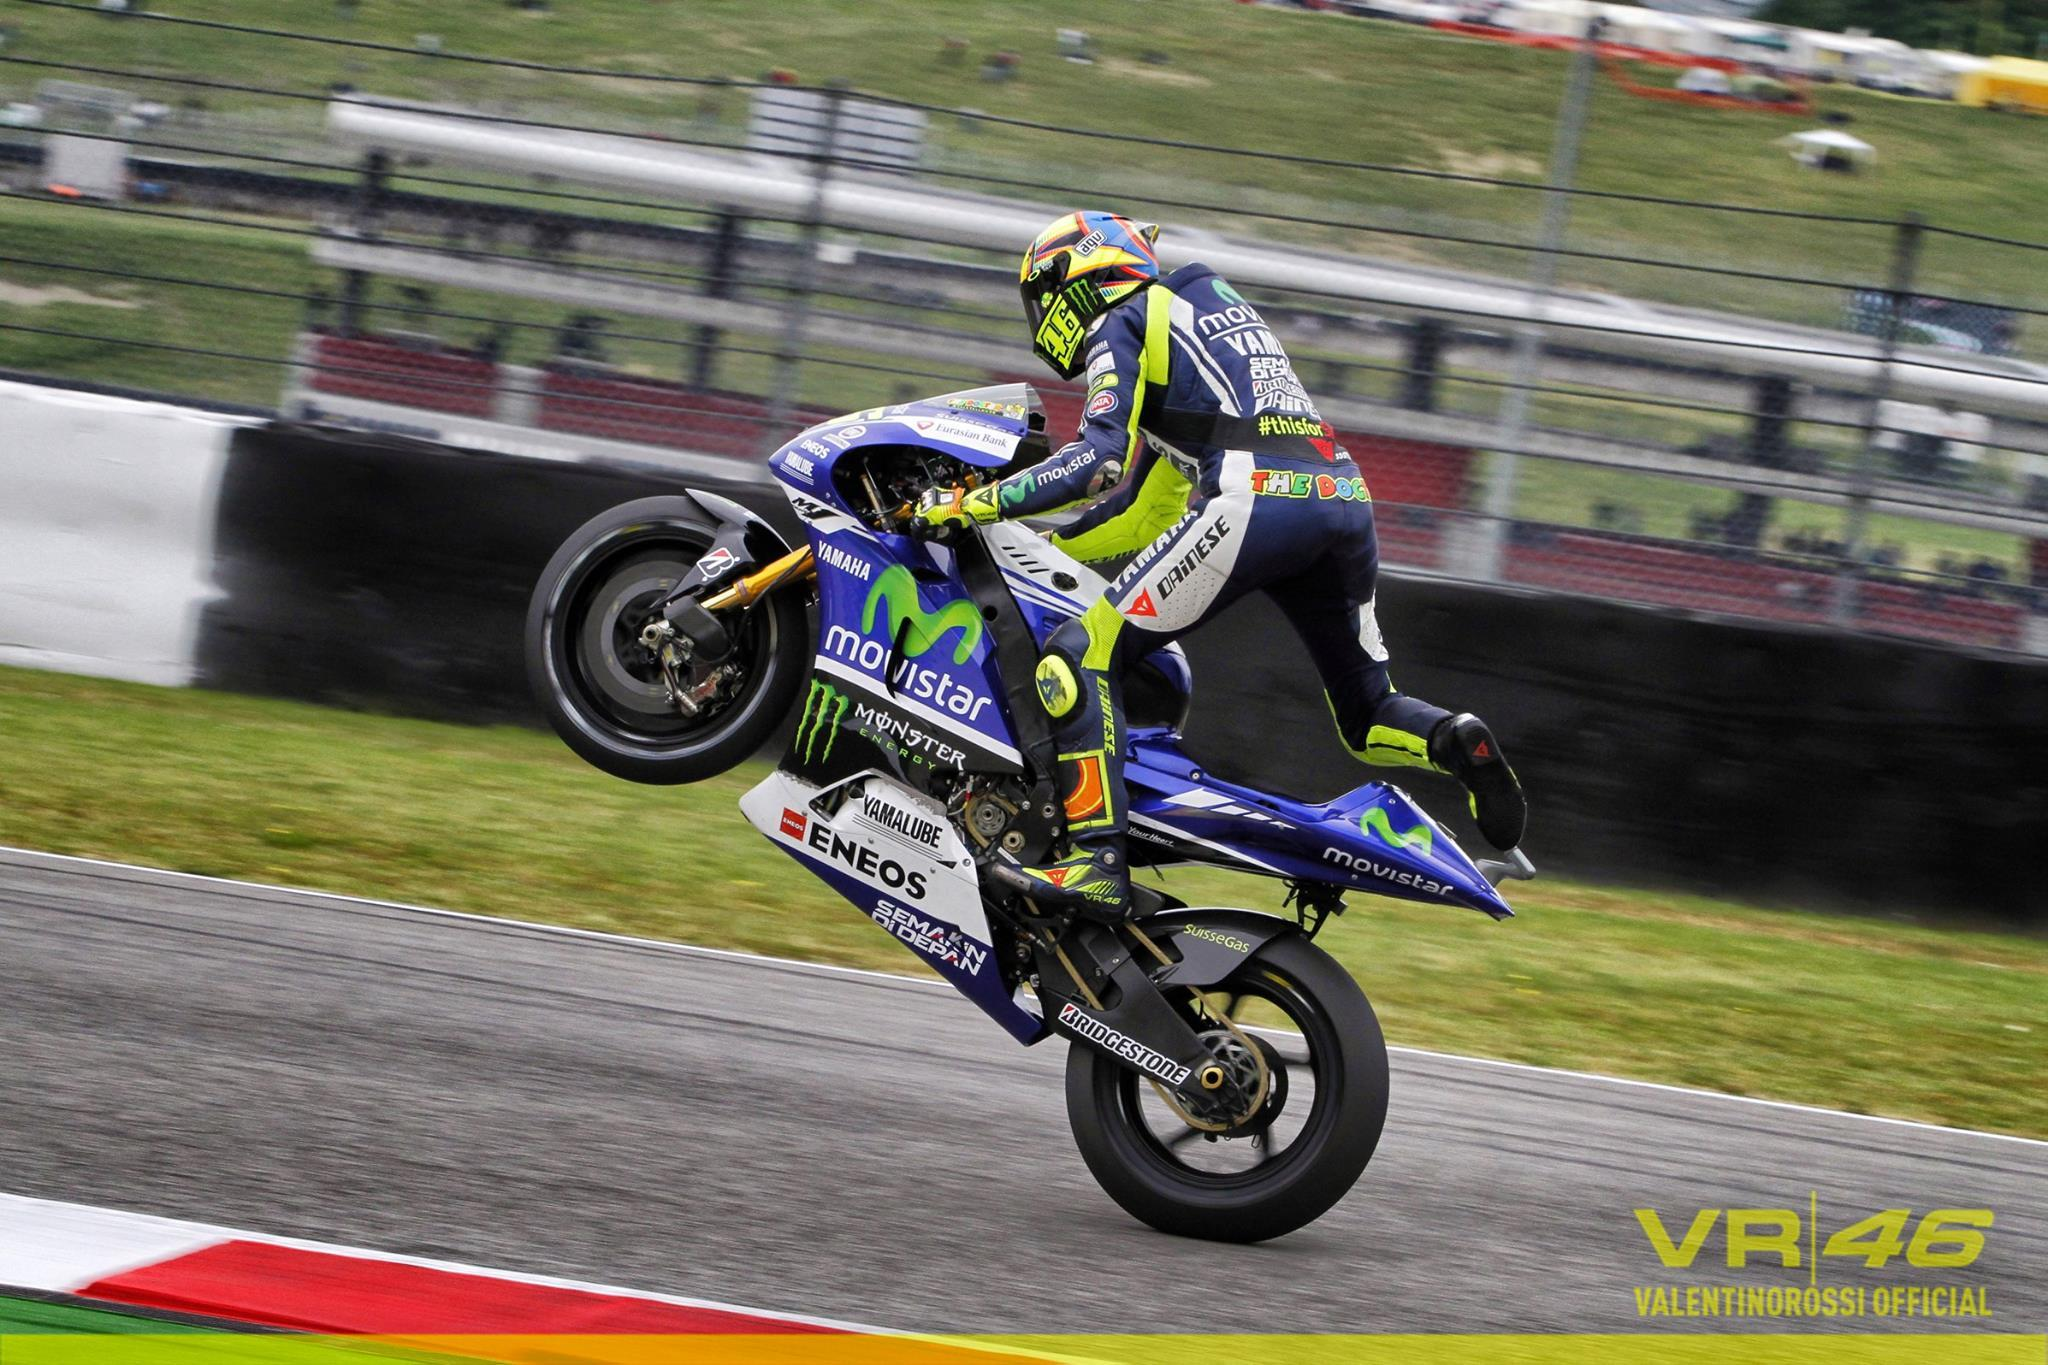 Valentino Rossi image :):):):):):) HD fond d'écran and backgrounds